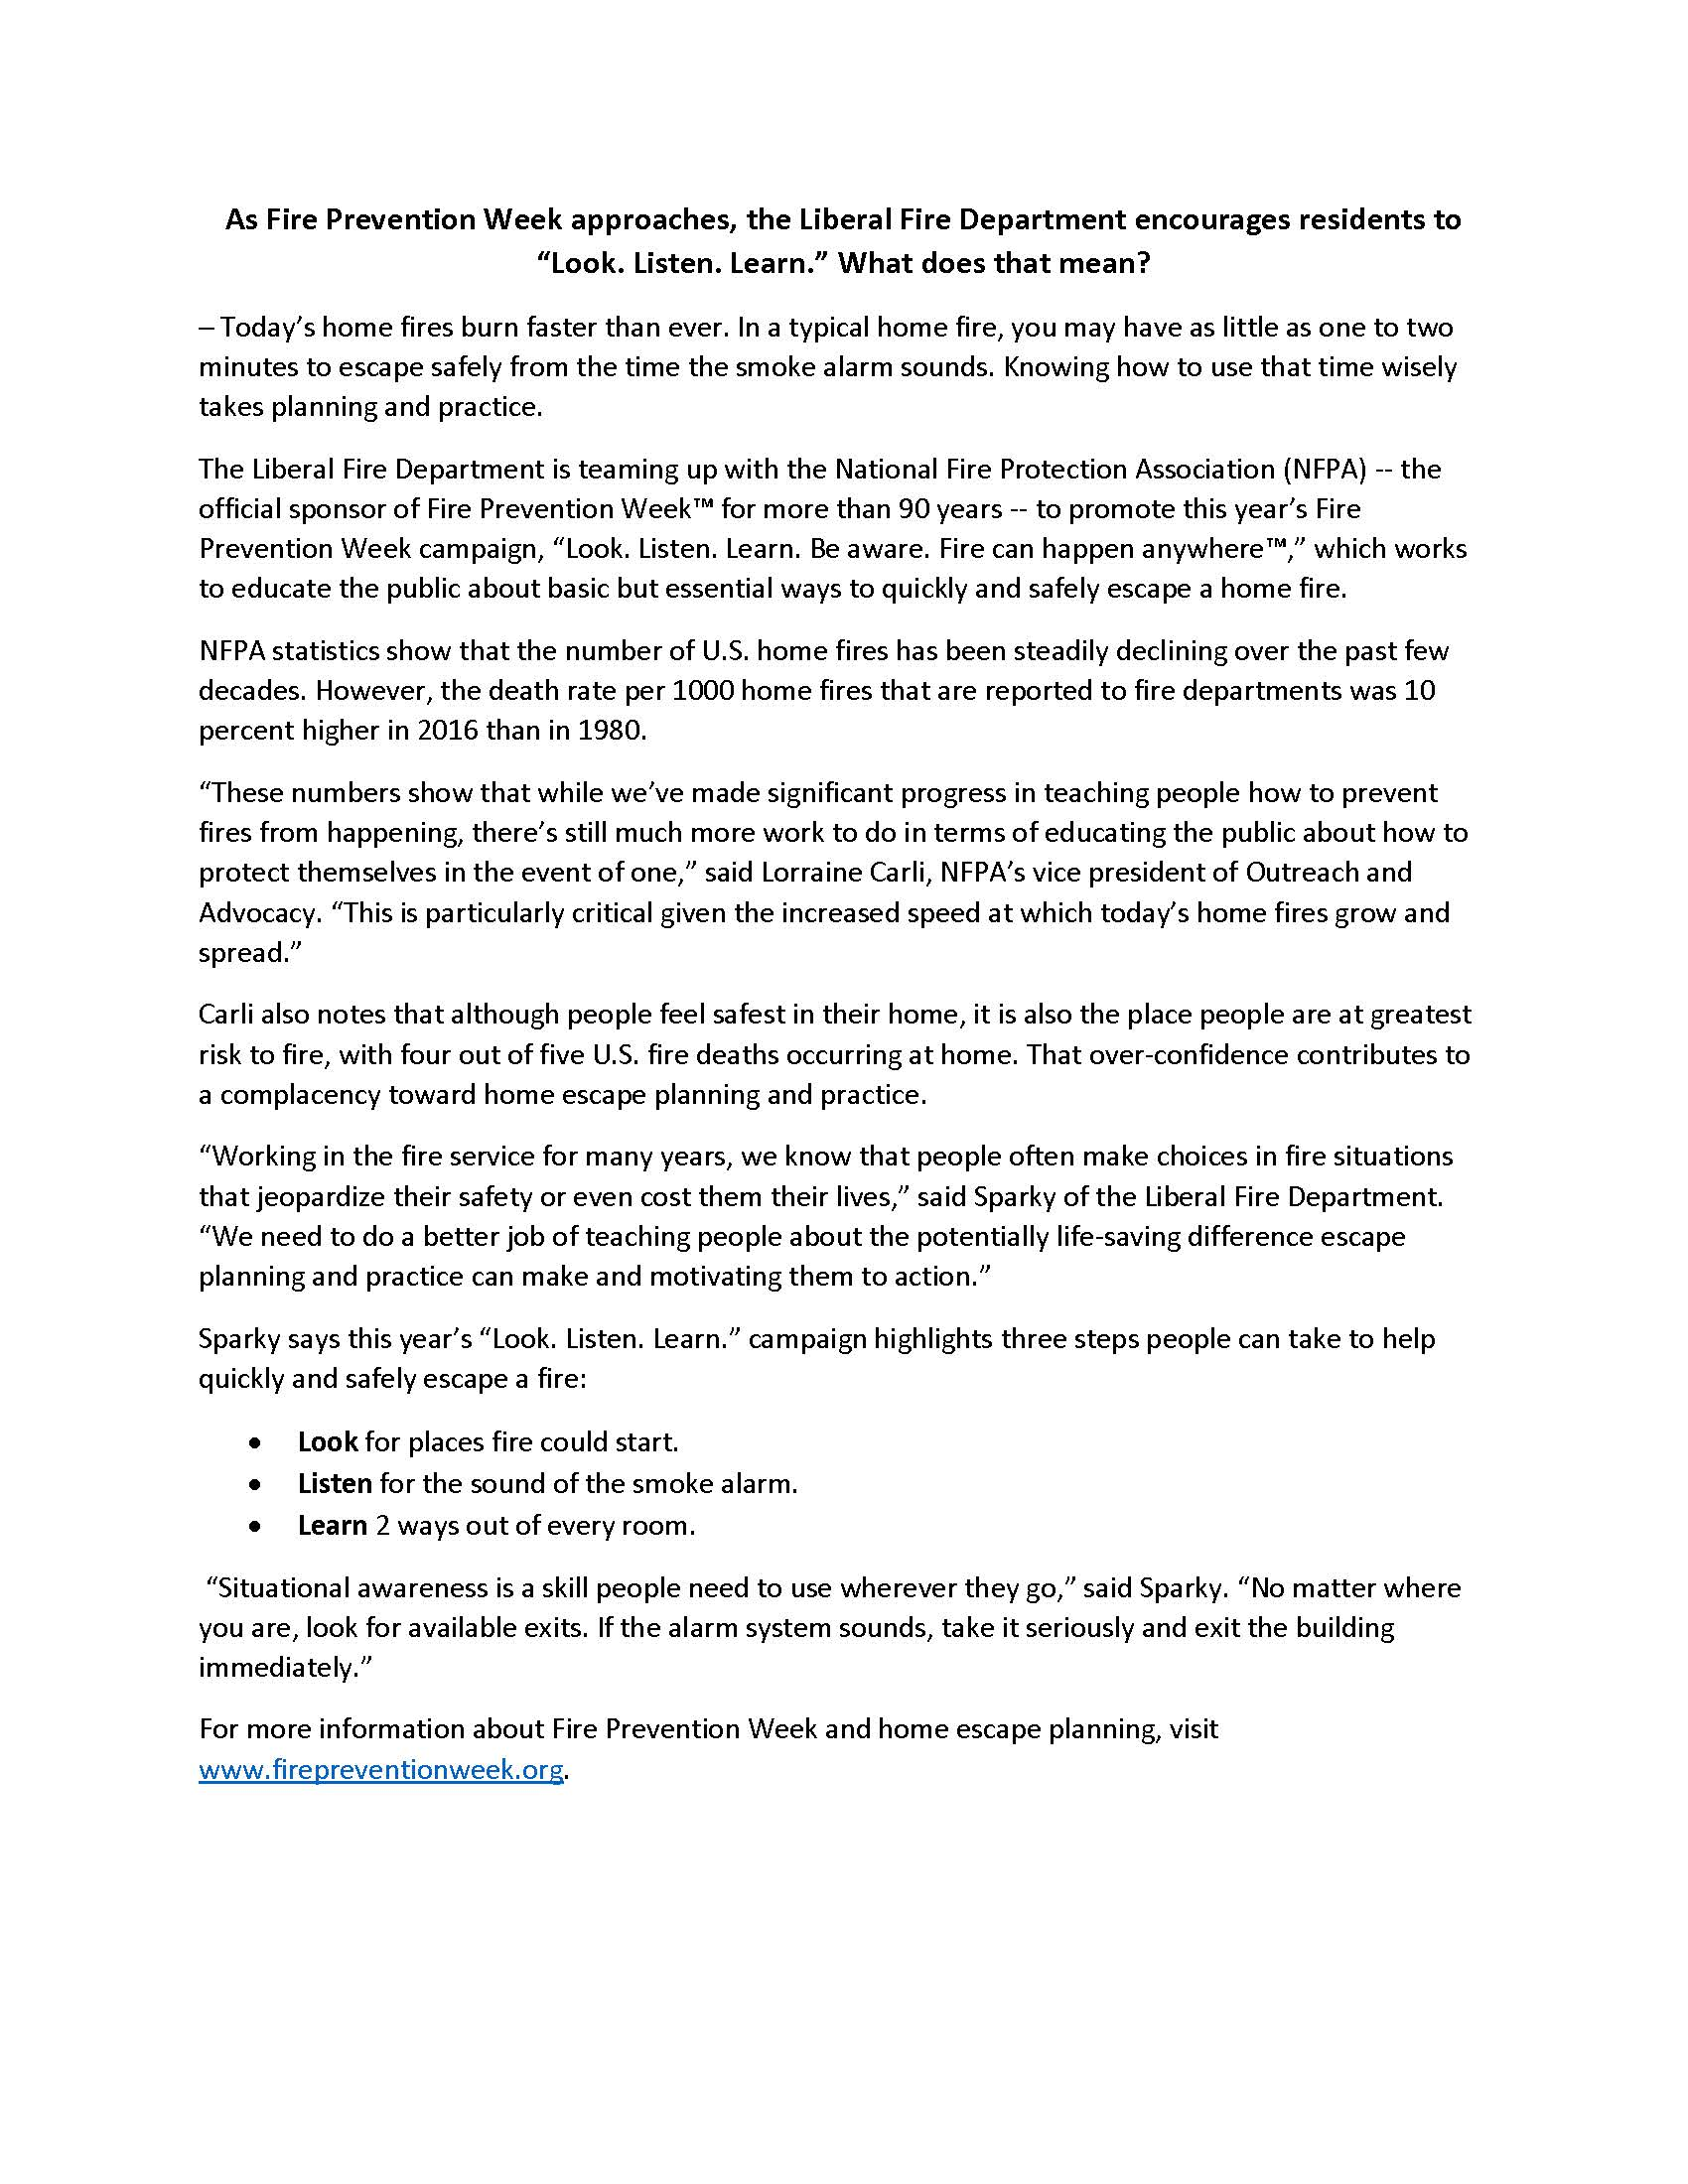 Fire Prevention Week Press Release